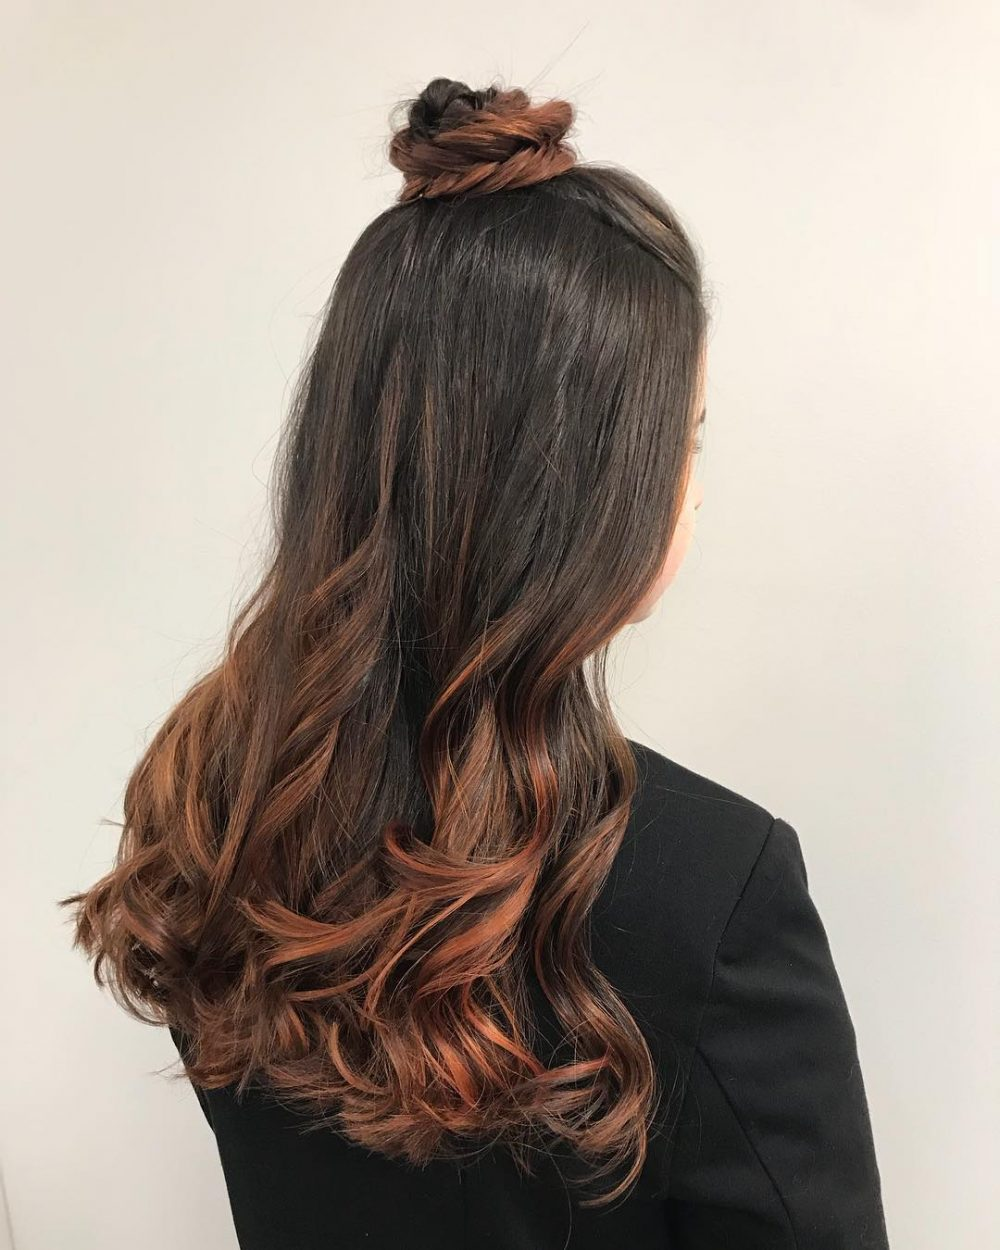 Good Instagram @emilyhannah.hairstylist